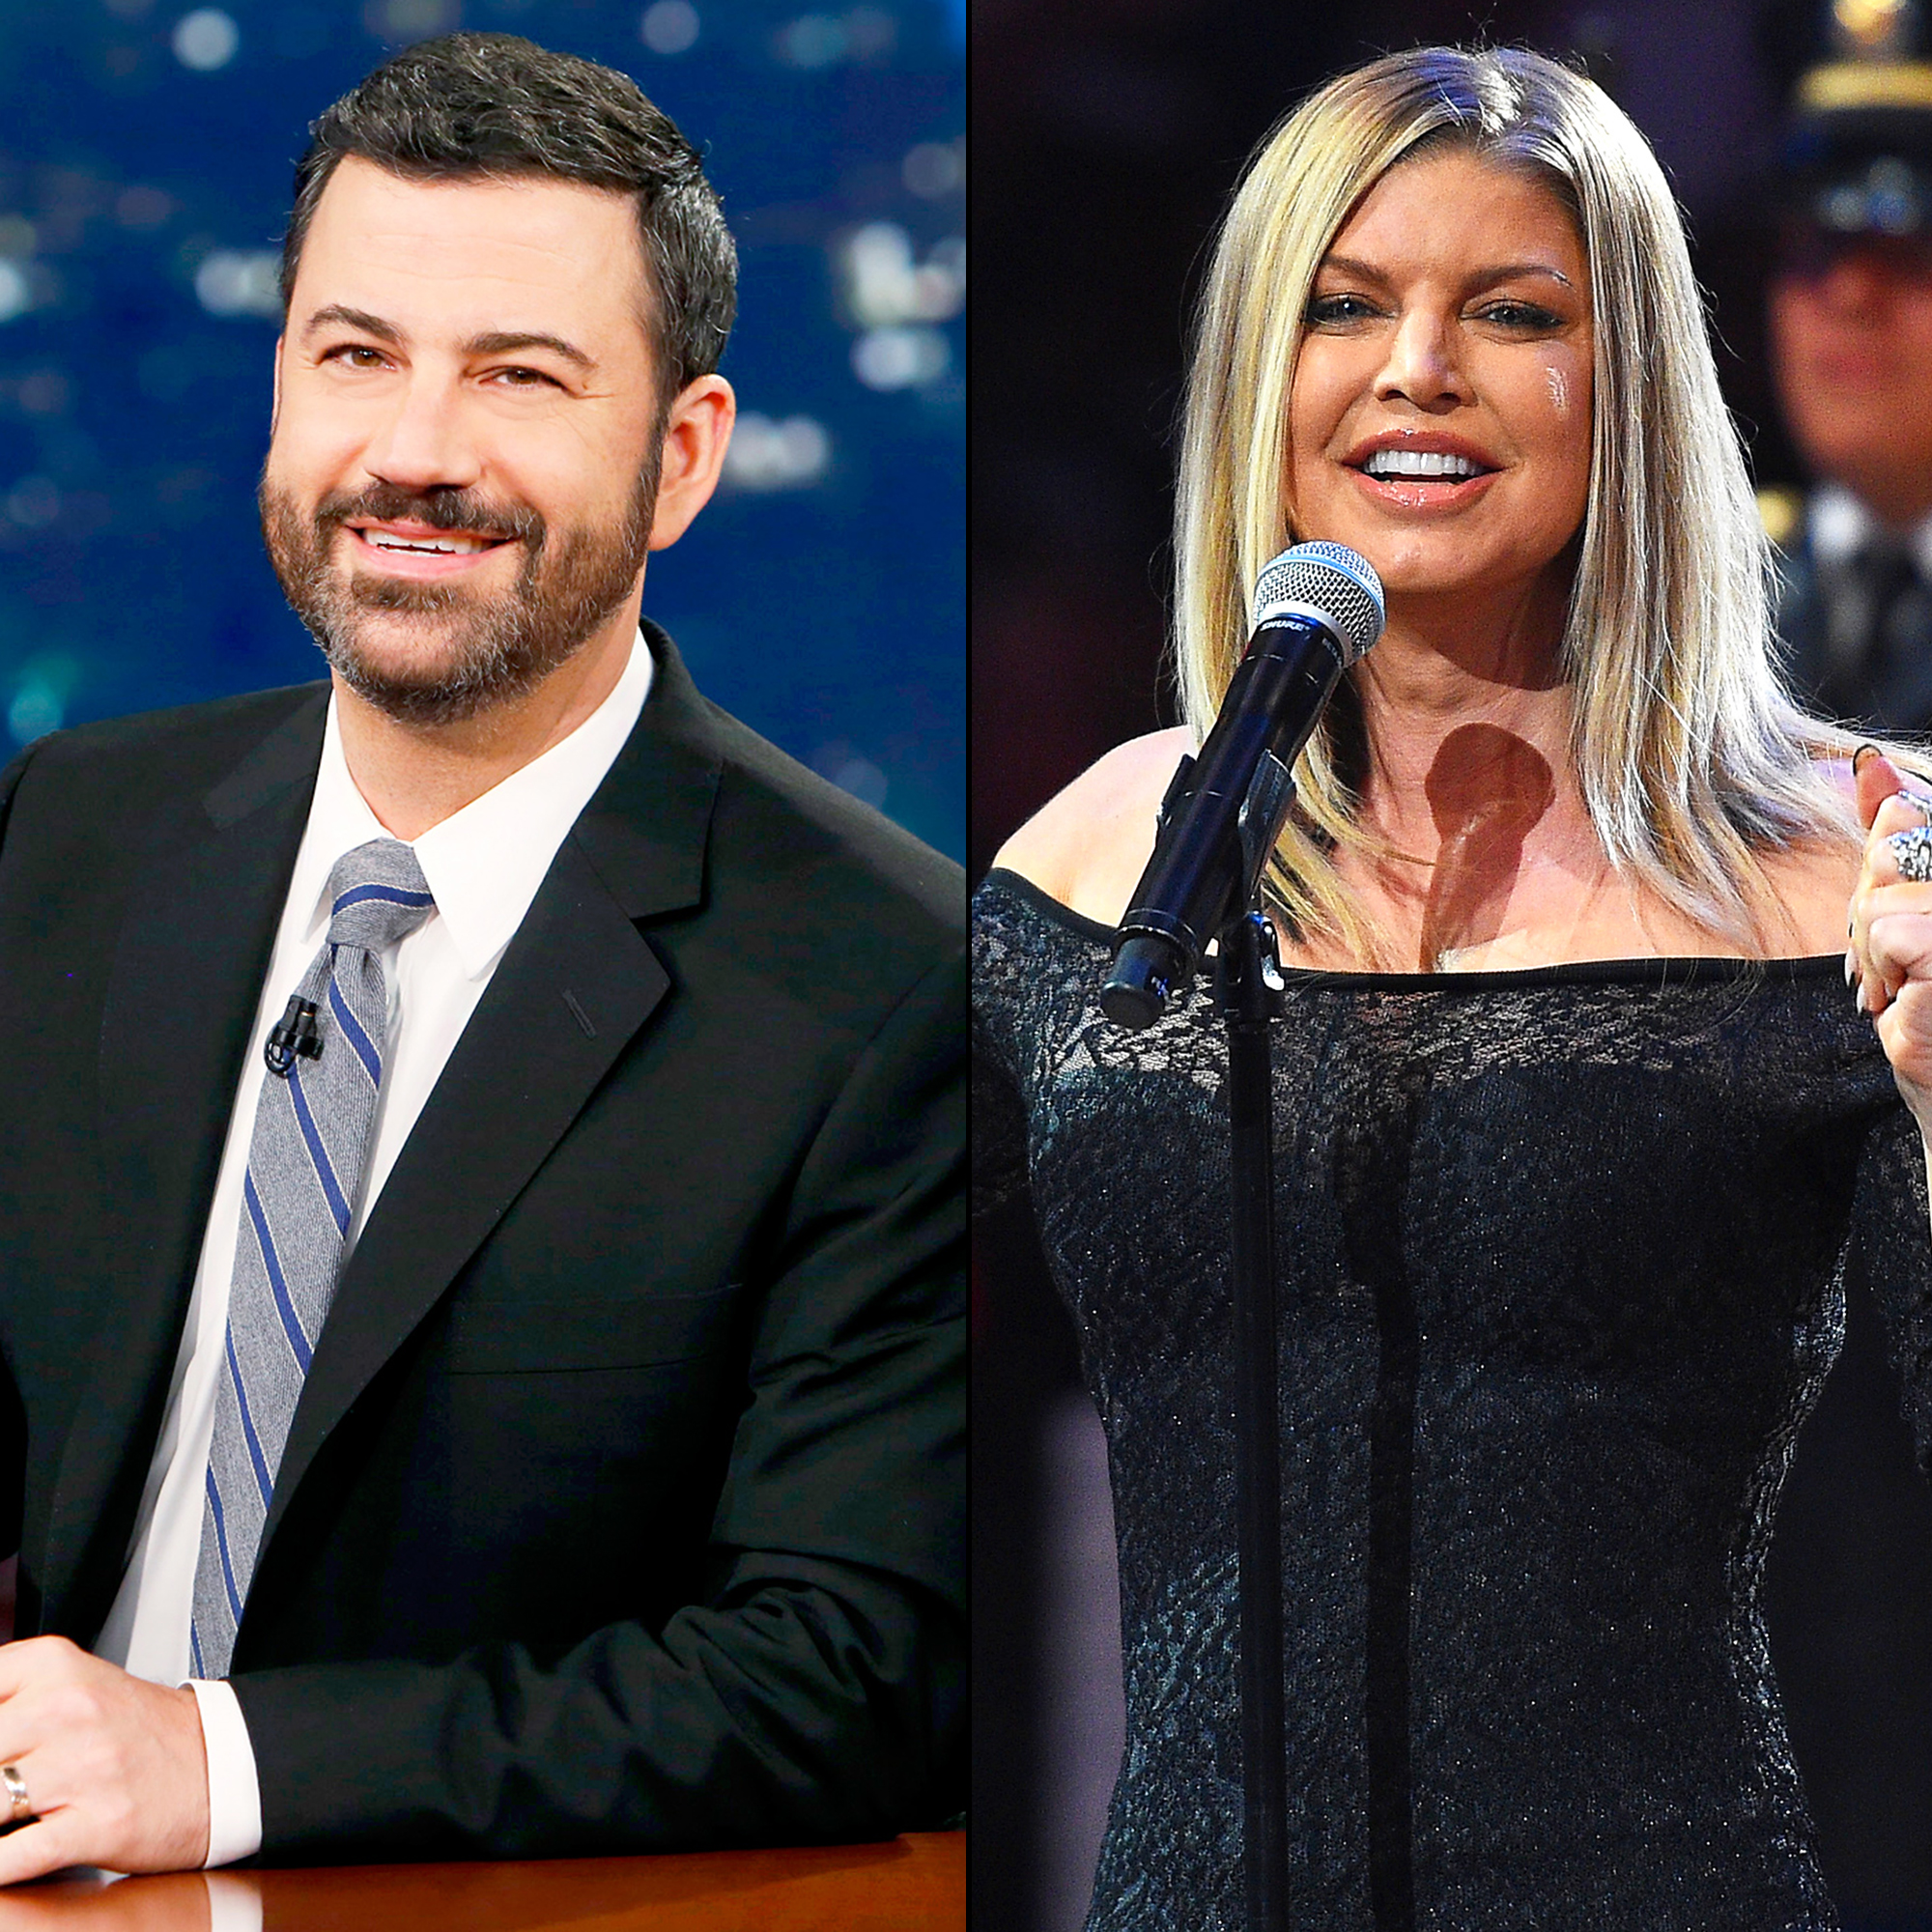 Jimmy Kimmel and Fergie